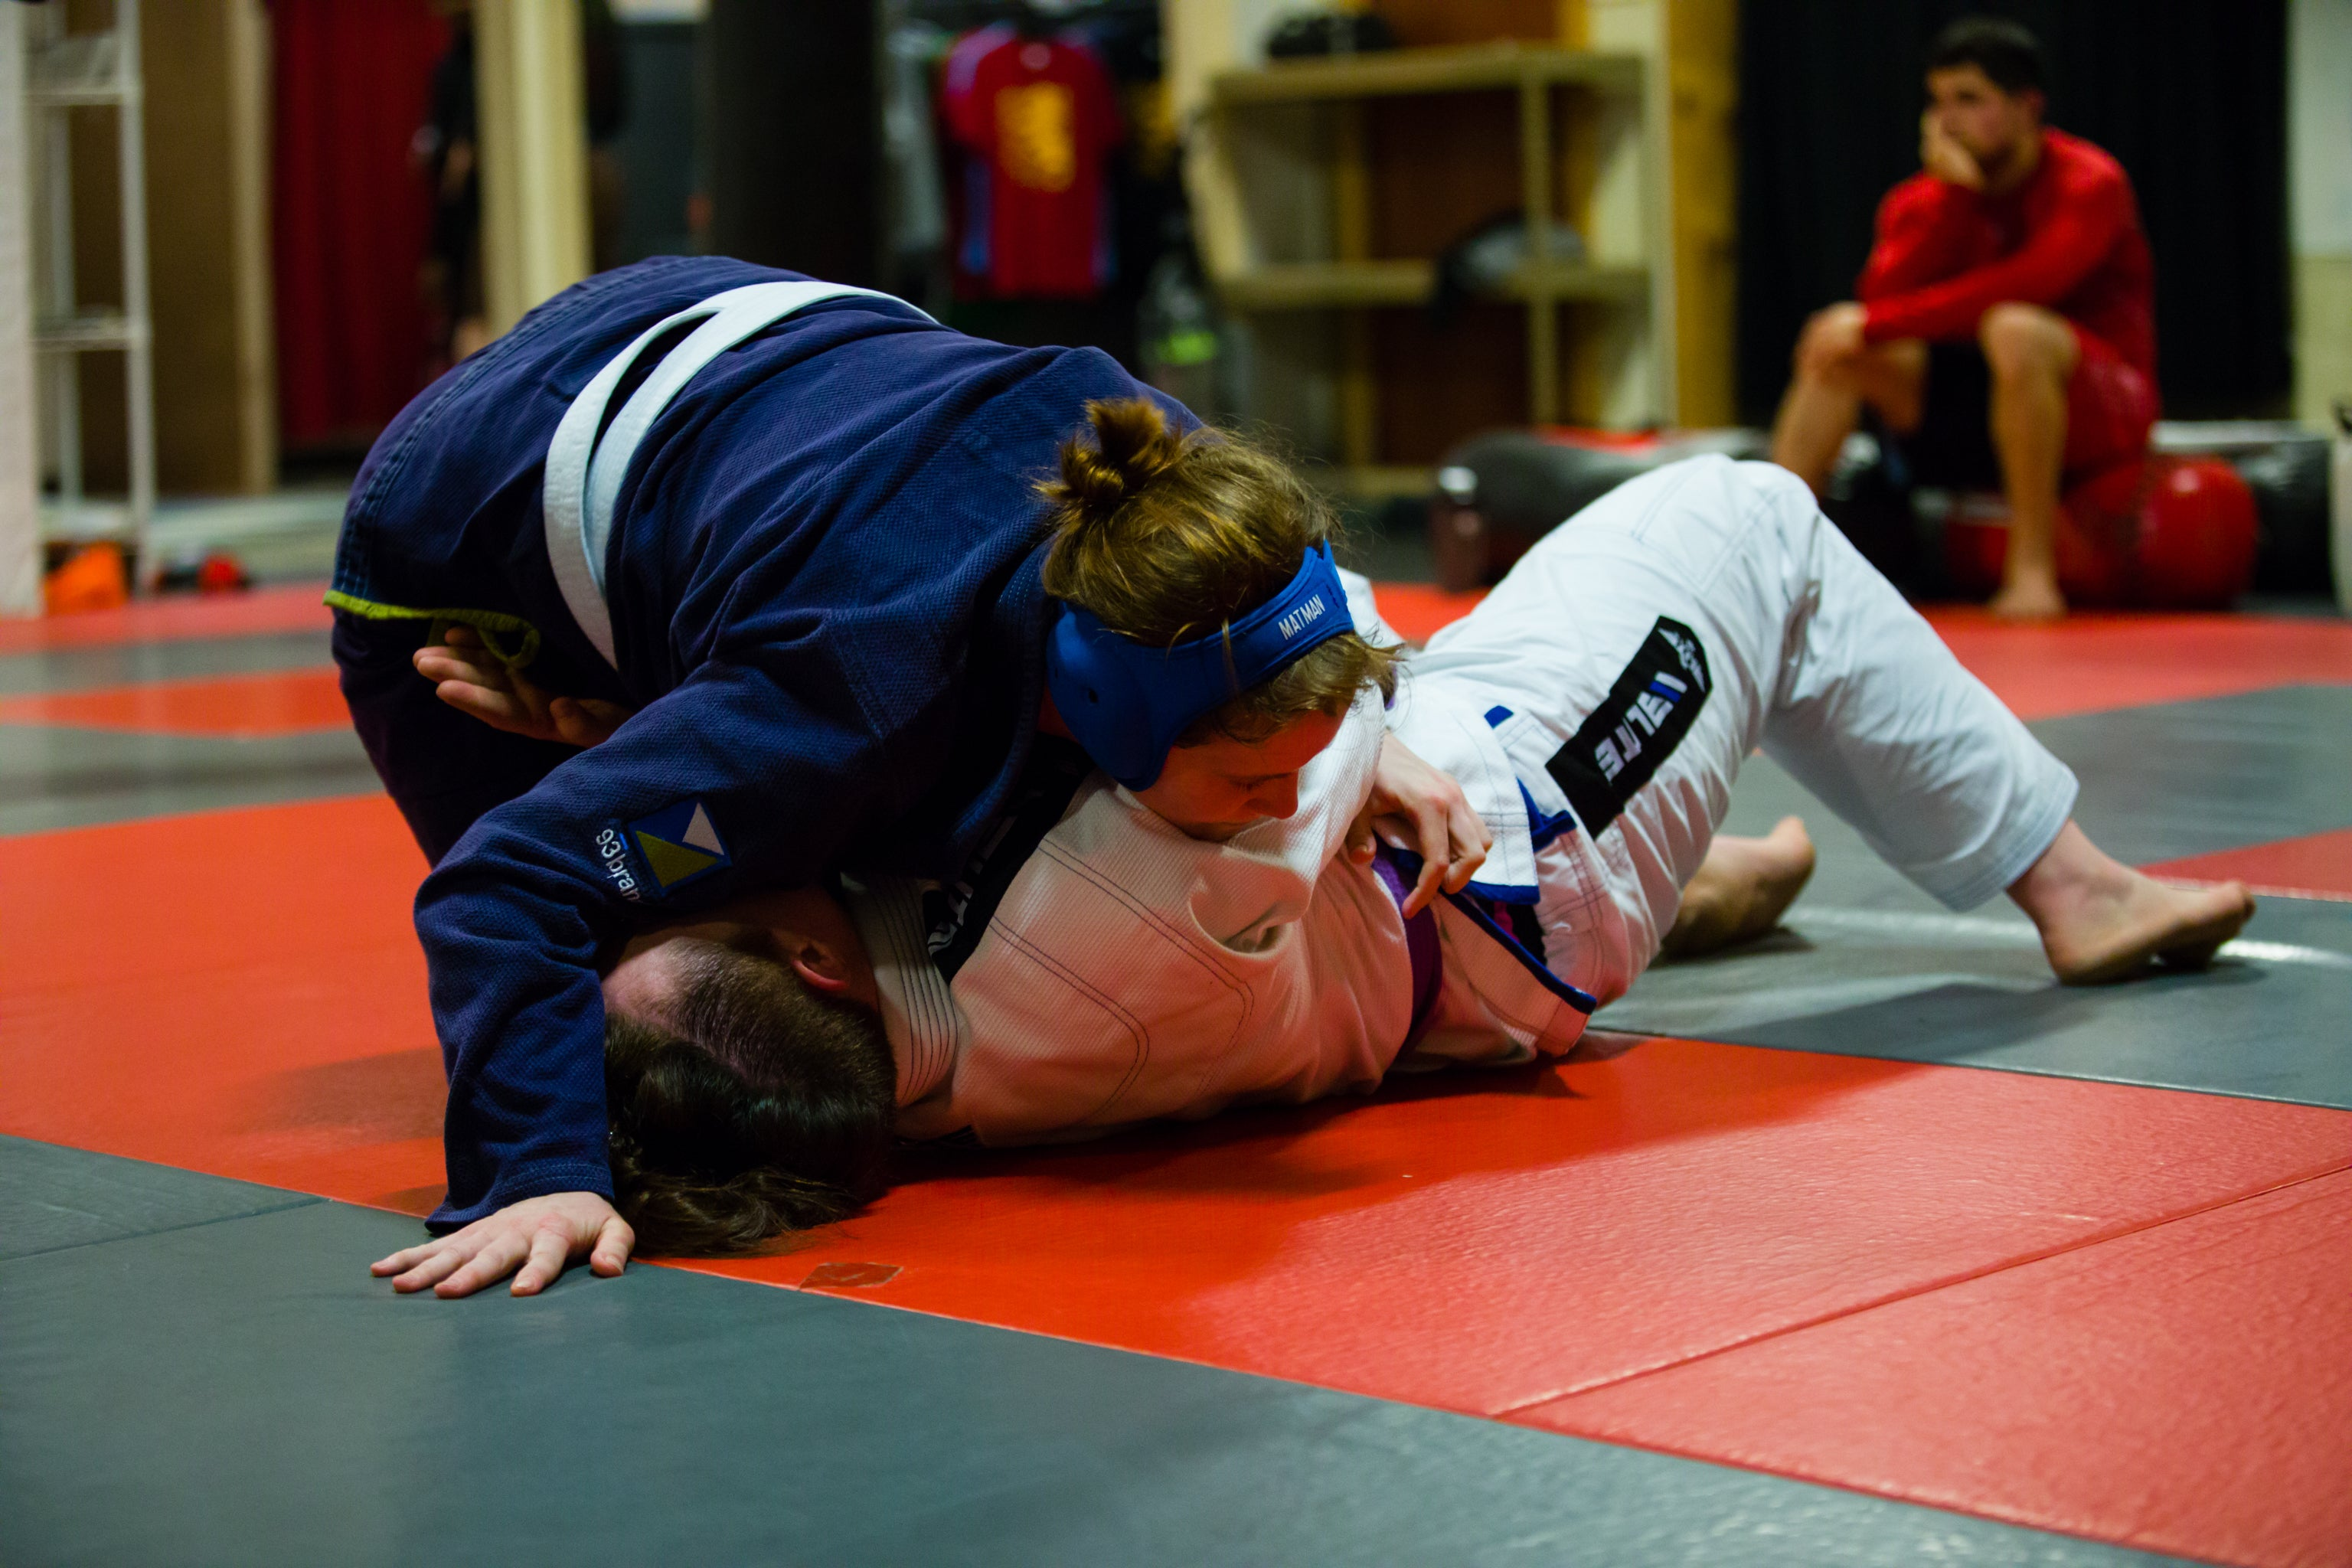 Elite Sports Team Elite Bjj Fighter Jessica Michelle Sunier Image6